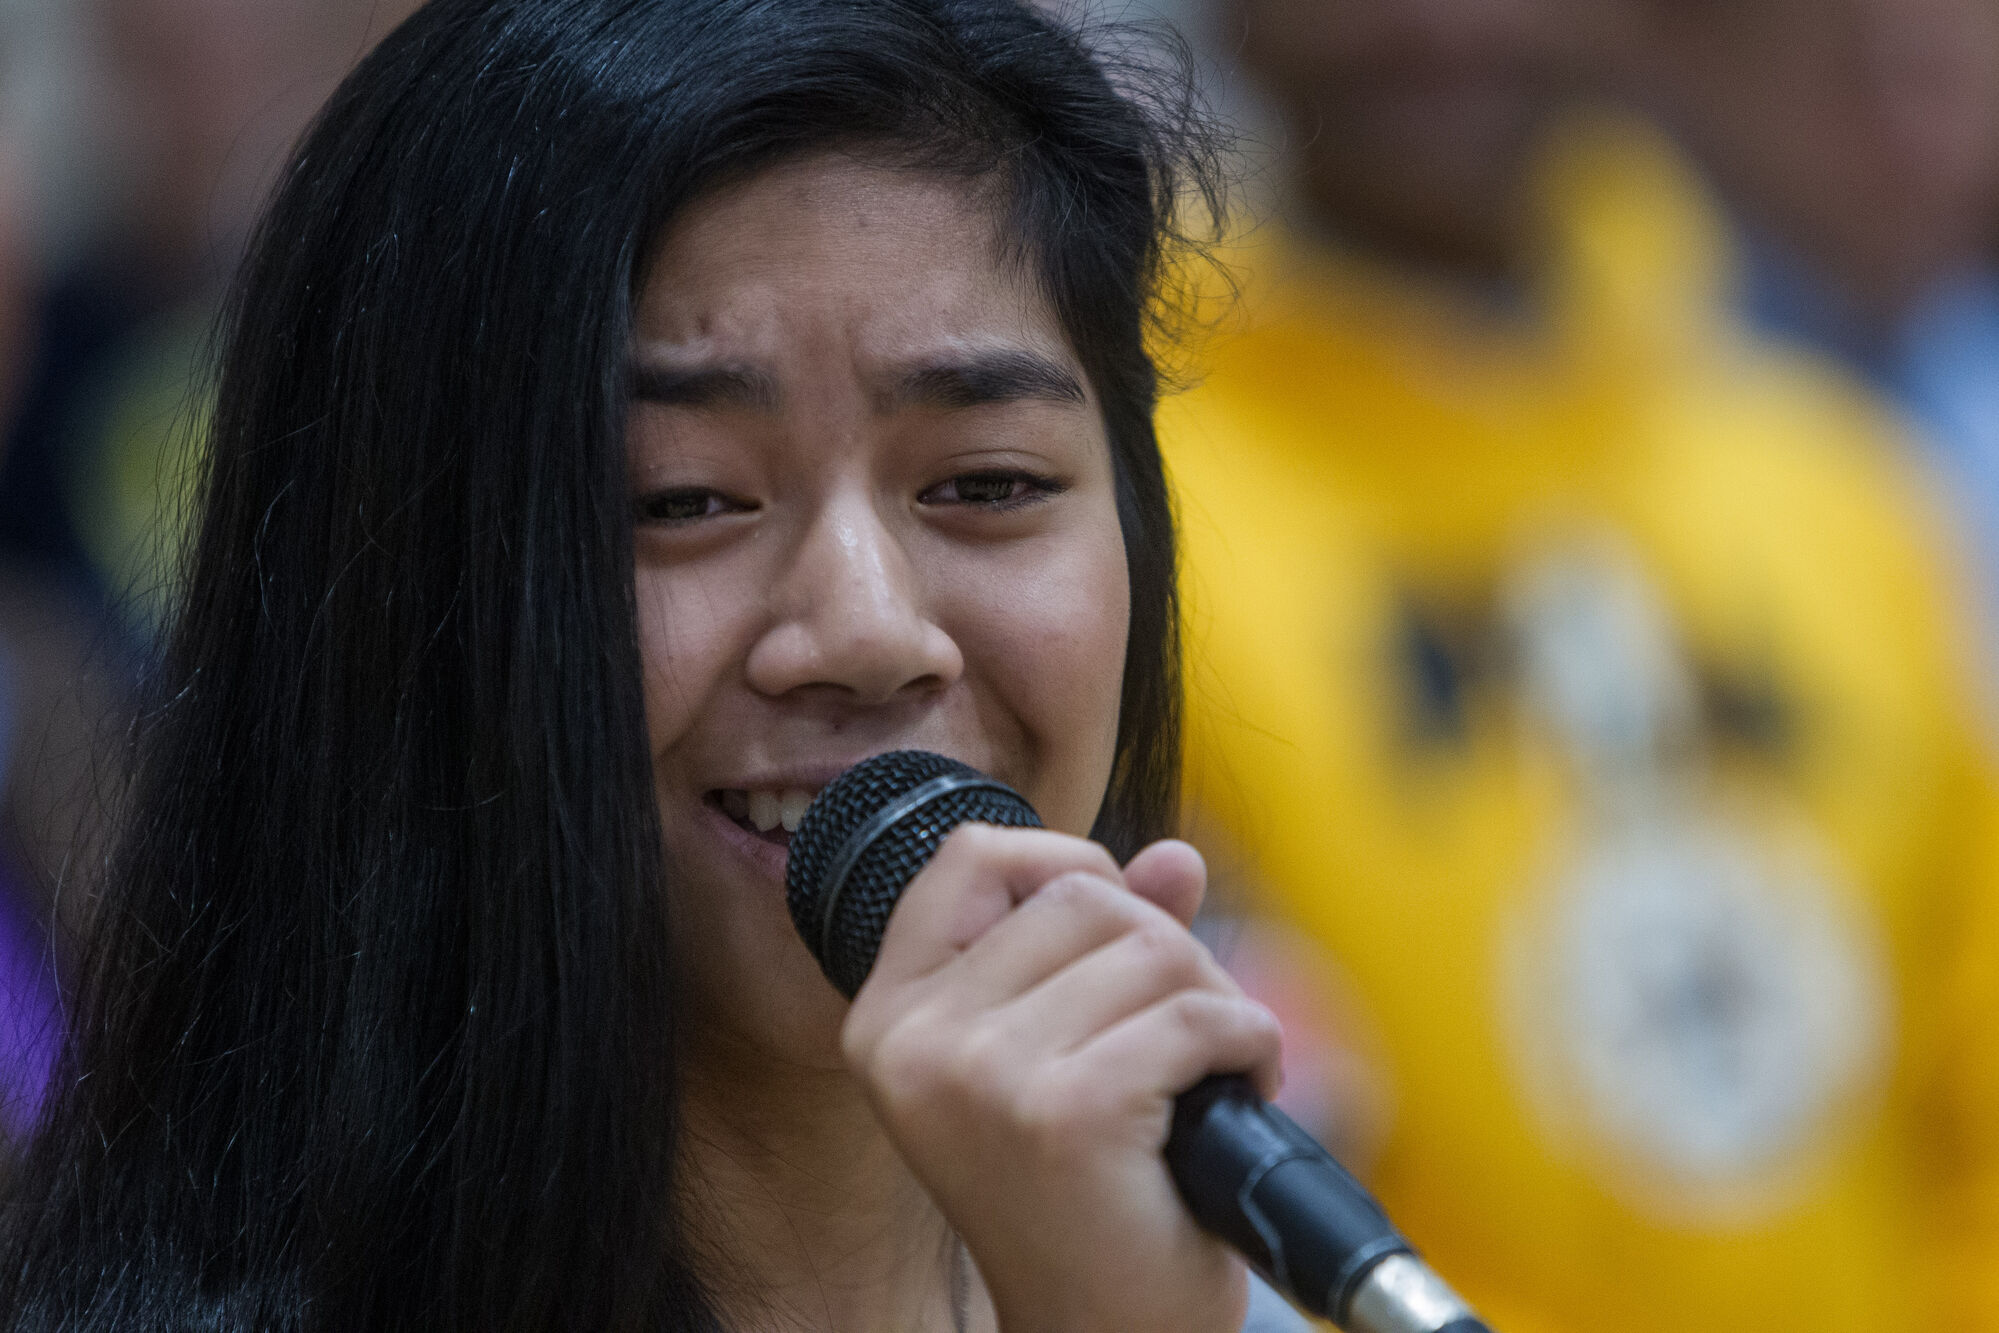 The 15-year-old Aragon shot to Internet fame in 2011 when a video of her rendition of Lady Gaga's Born This Way became a viral sensation on YouTube, earning more than 58 million views.